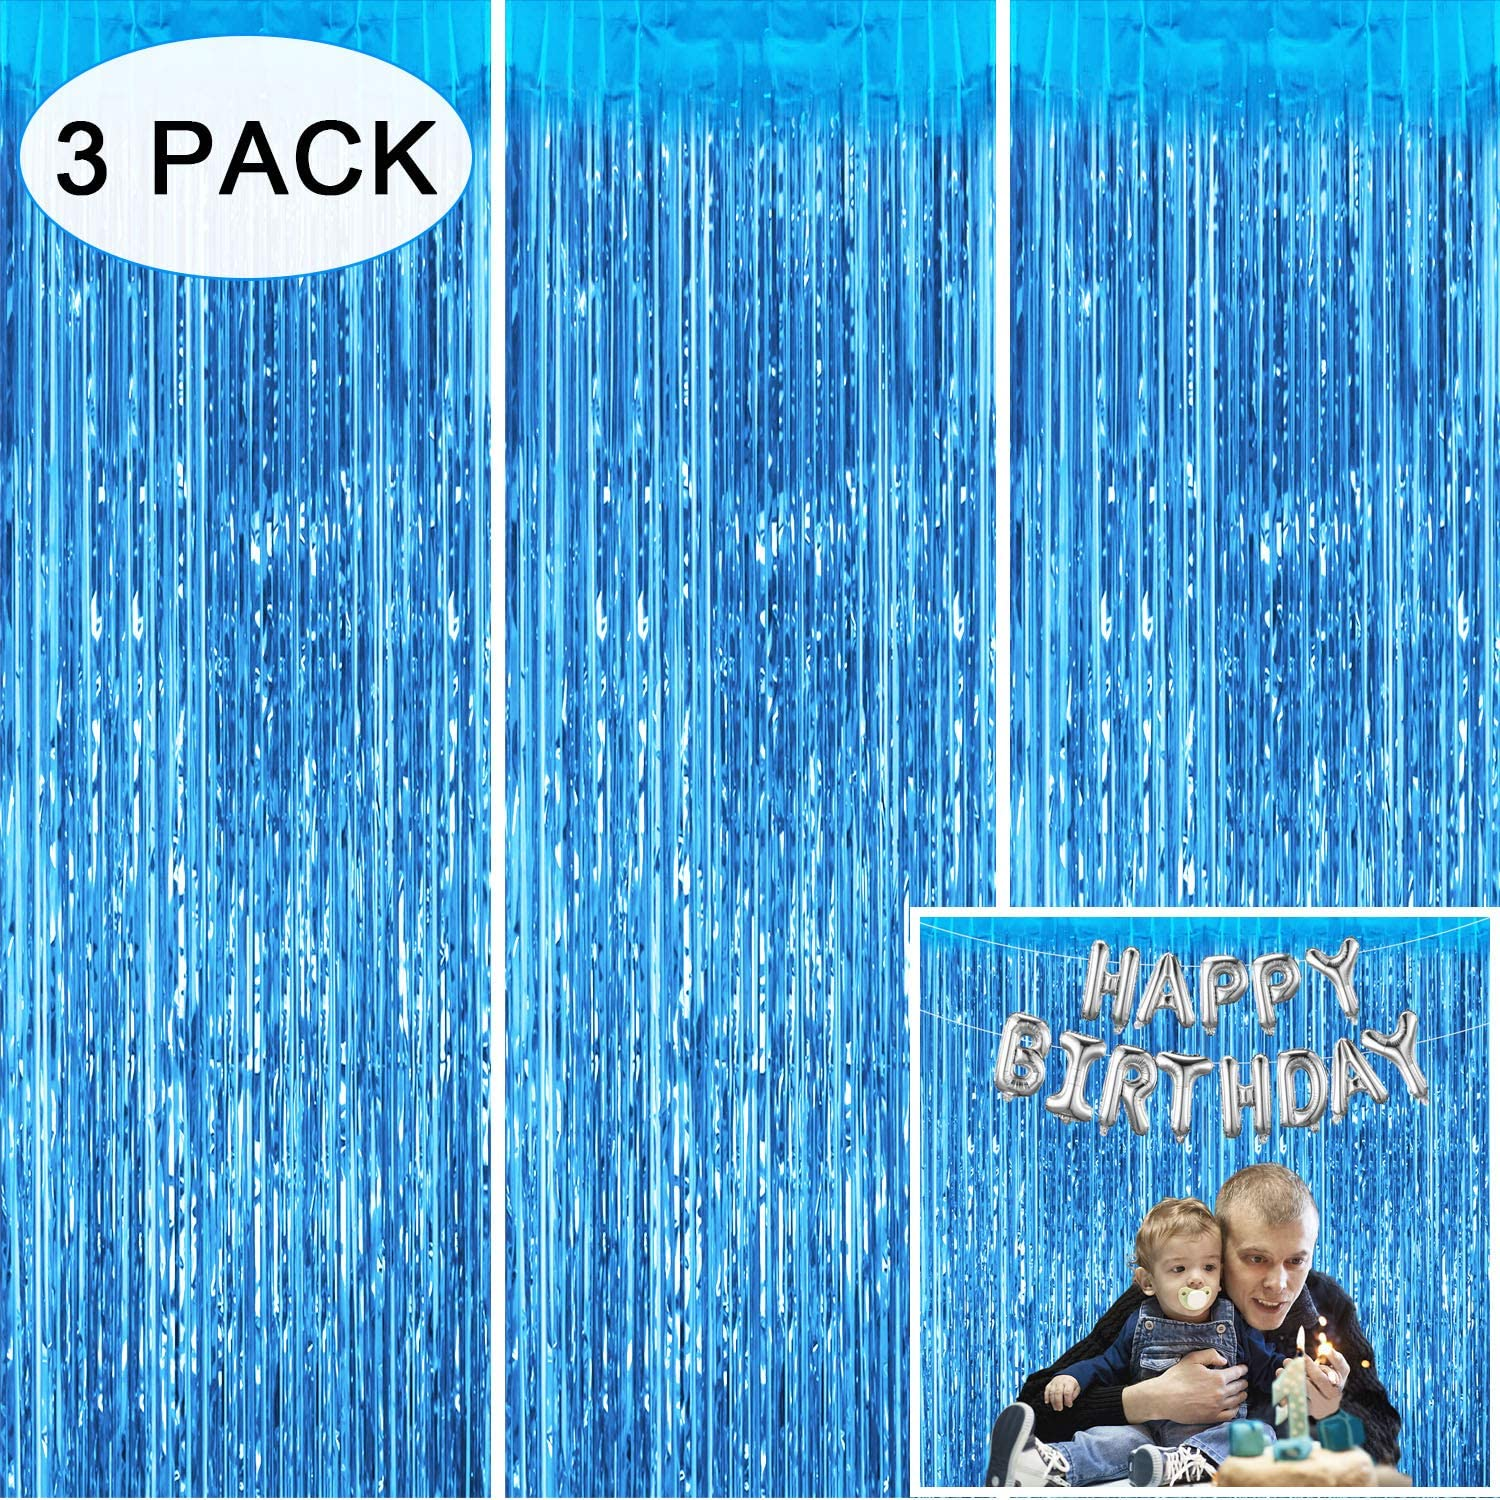 Tifeson Tinsel Foil Fringe Curtains Backdrop Blue, 3 Pack 3.2 x 8.3 ft Metallic Curtain Party Decoration for Frozen Birthday Baby Shower for Boy Graduation Party Wall Backdrop